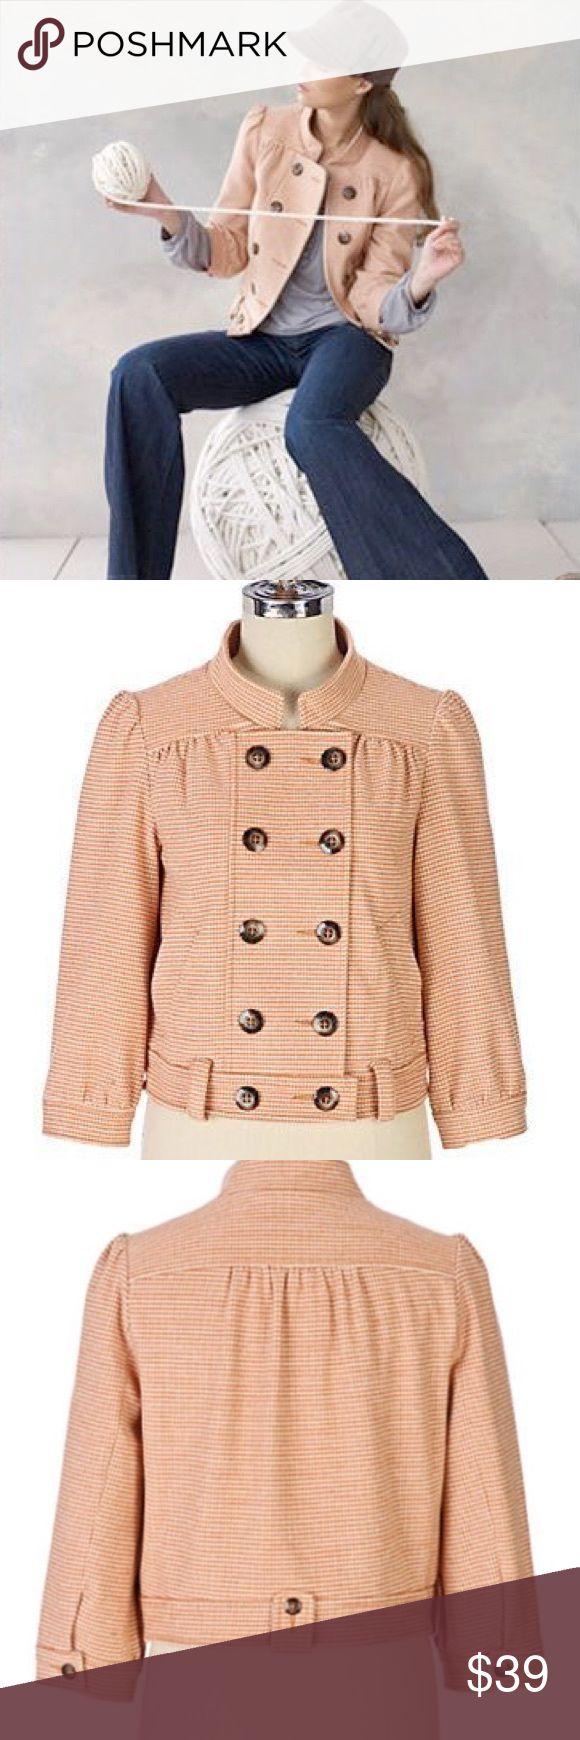 Anthropologie Idra Earhart Wool Retro Bomber NWOT Anthropologie Idra Earhart Wool Bomber in Houndstooth • Crop sleeves • retro Vintage Look • NWOT • no trades Anthropologie Jackets & Coats